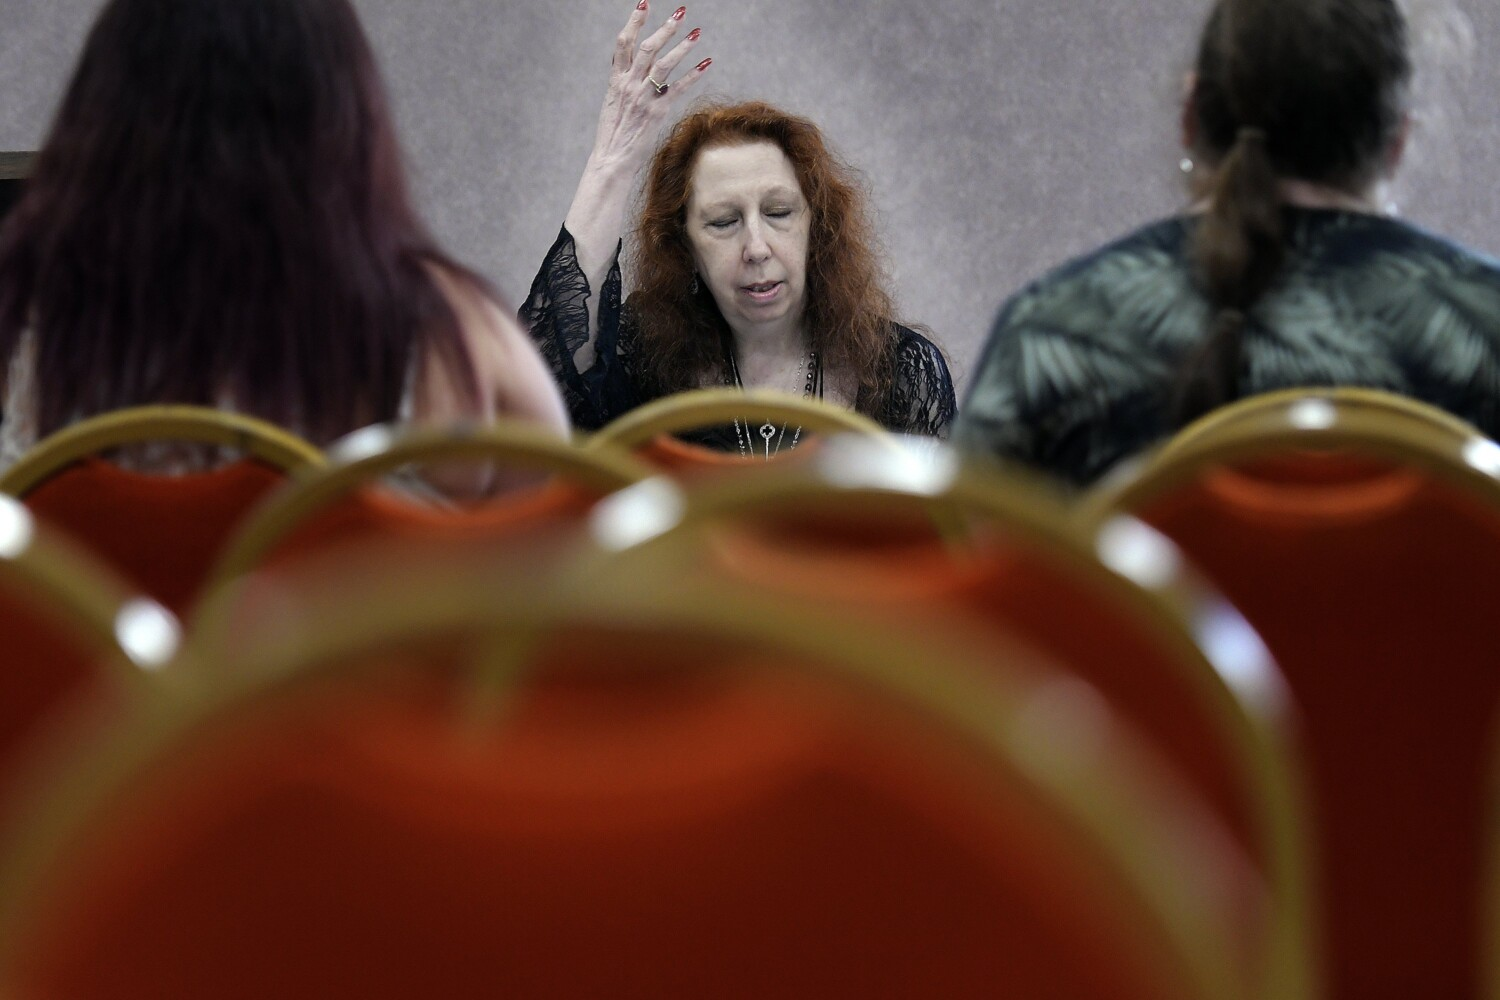 Festival brings witches, psychics, holistic healers to Augusta - CentralMaine.com